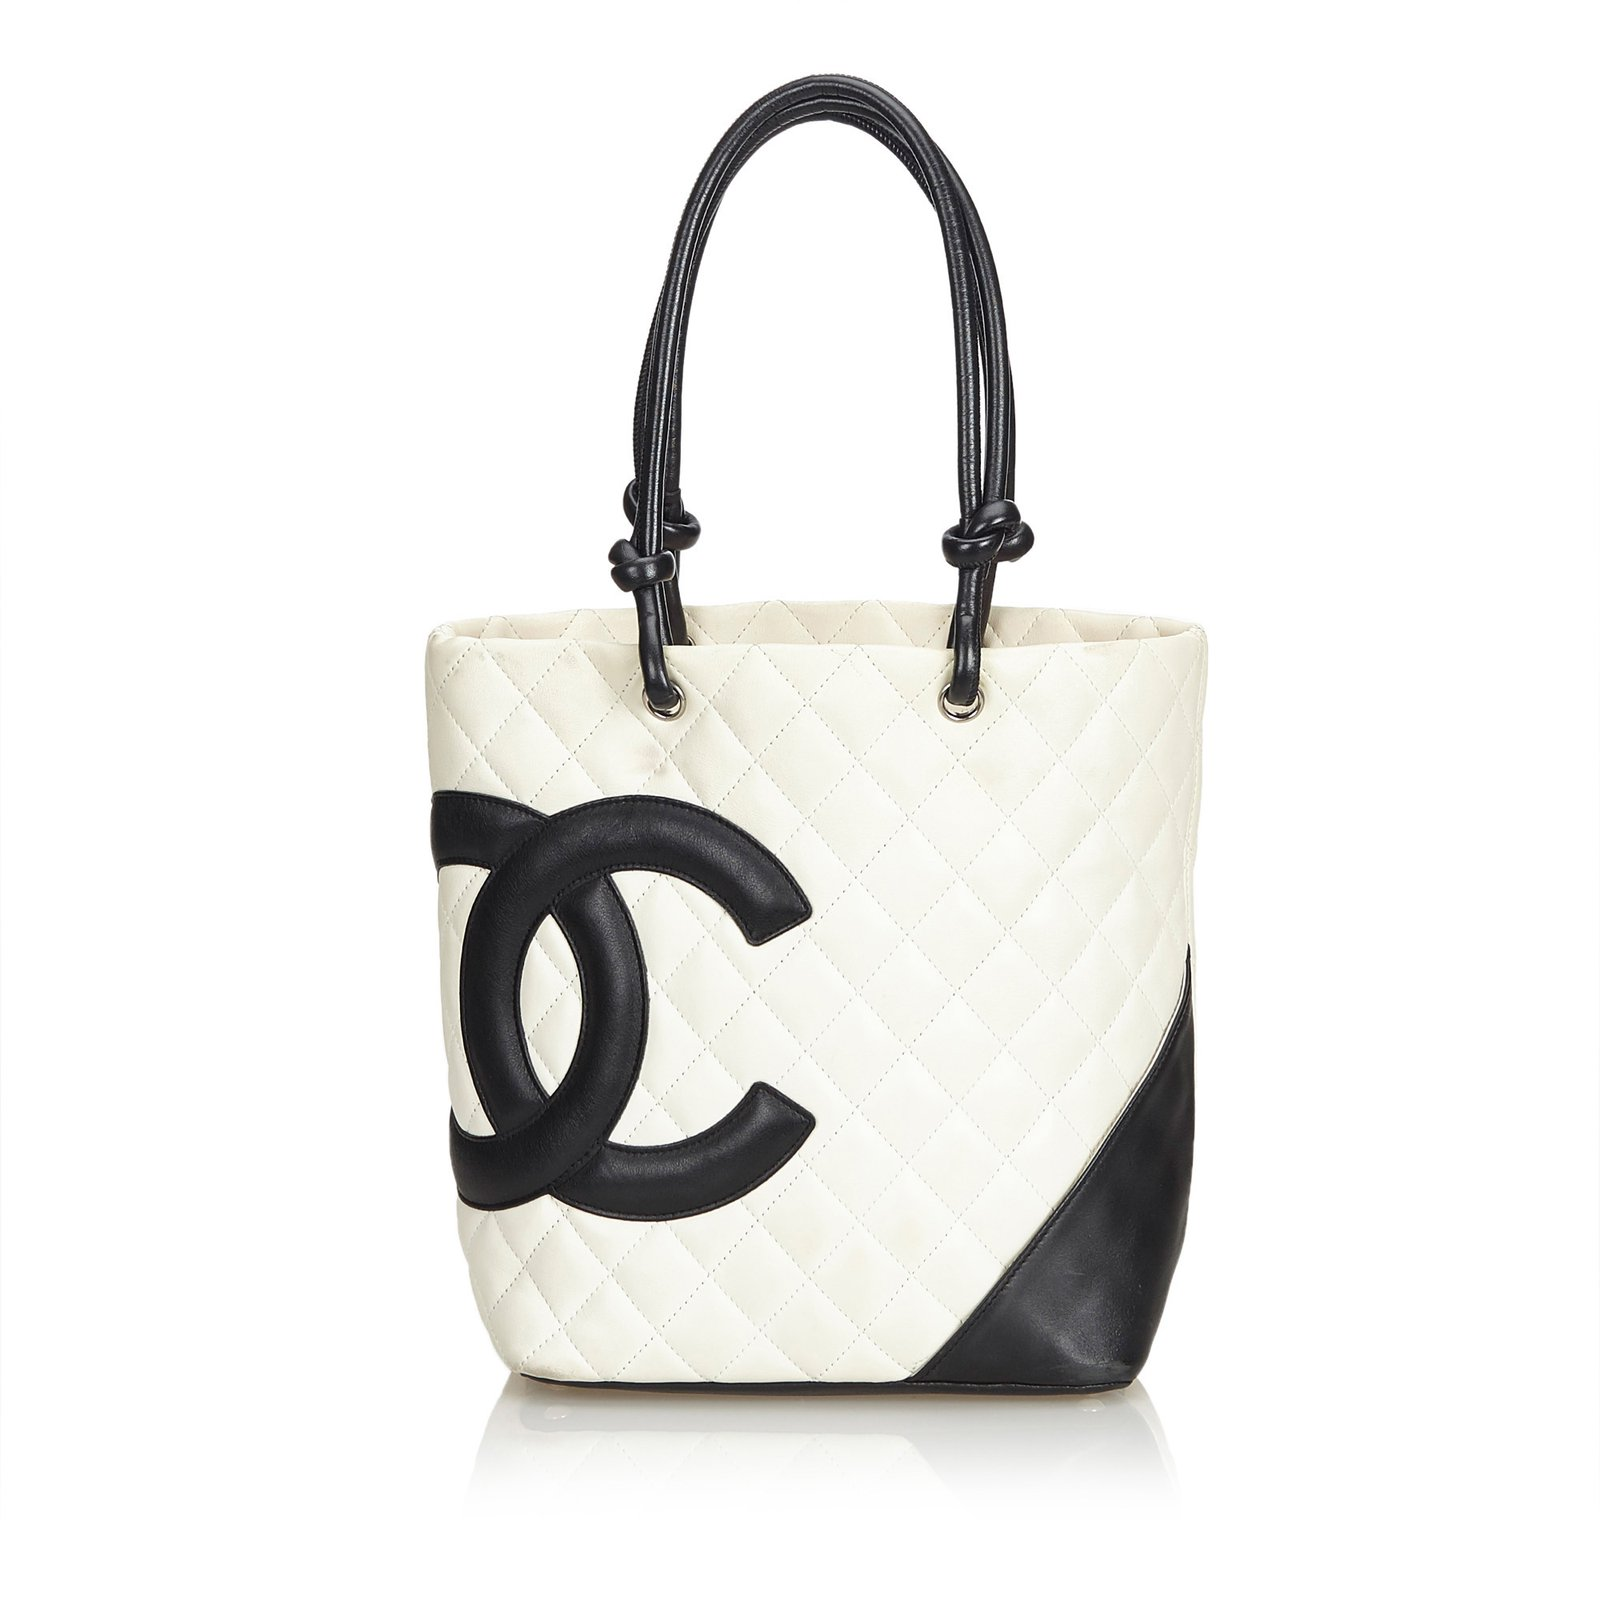 91b1f7a3798ef1 Chanel Cambon Ligne Tote Totes Leather Black,White,Cream ref.102320 ...